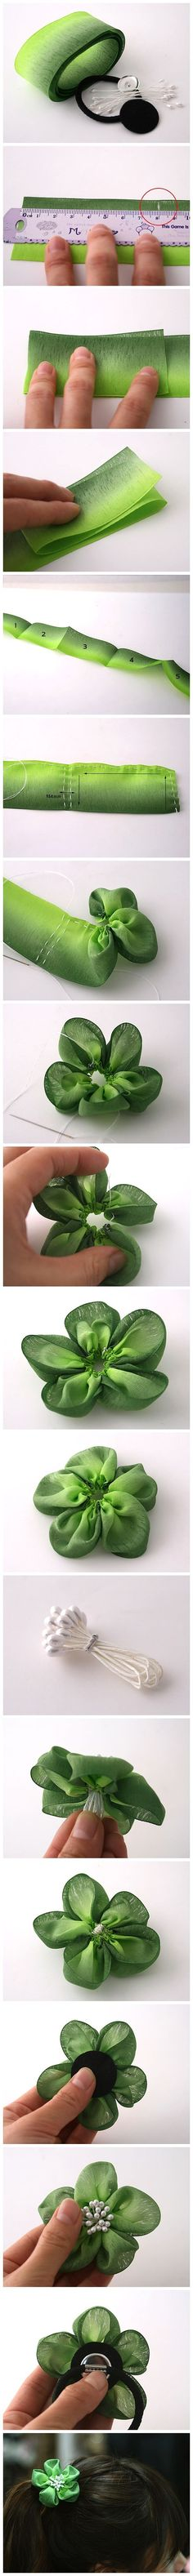 DIY 5 petal flower with fabric for hair clips